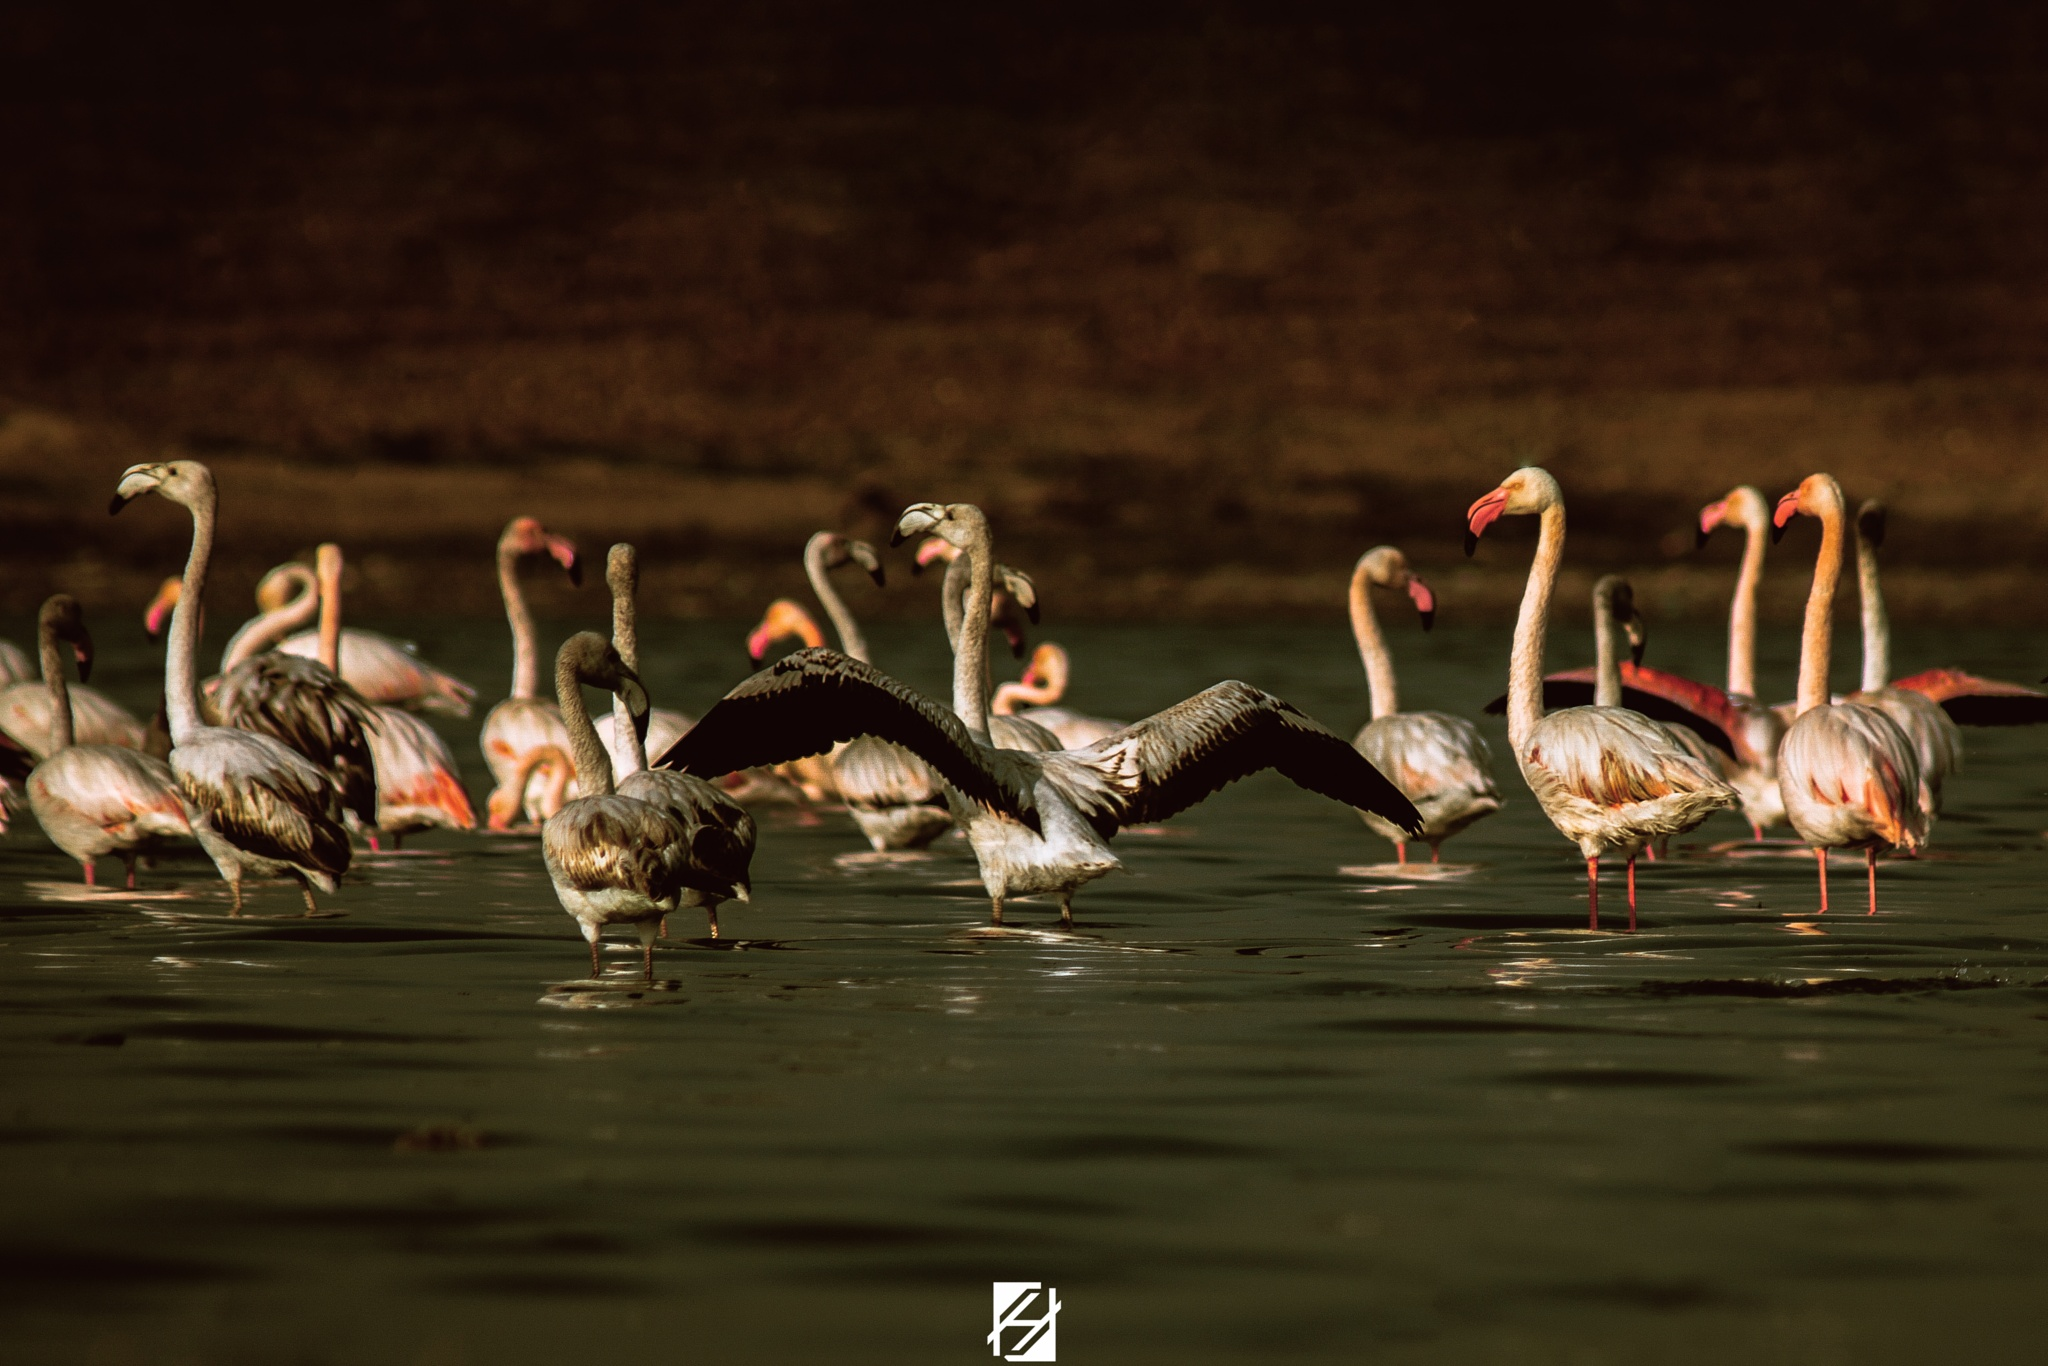 Collective Glimpse by Hichemou Photography